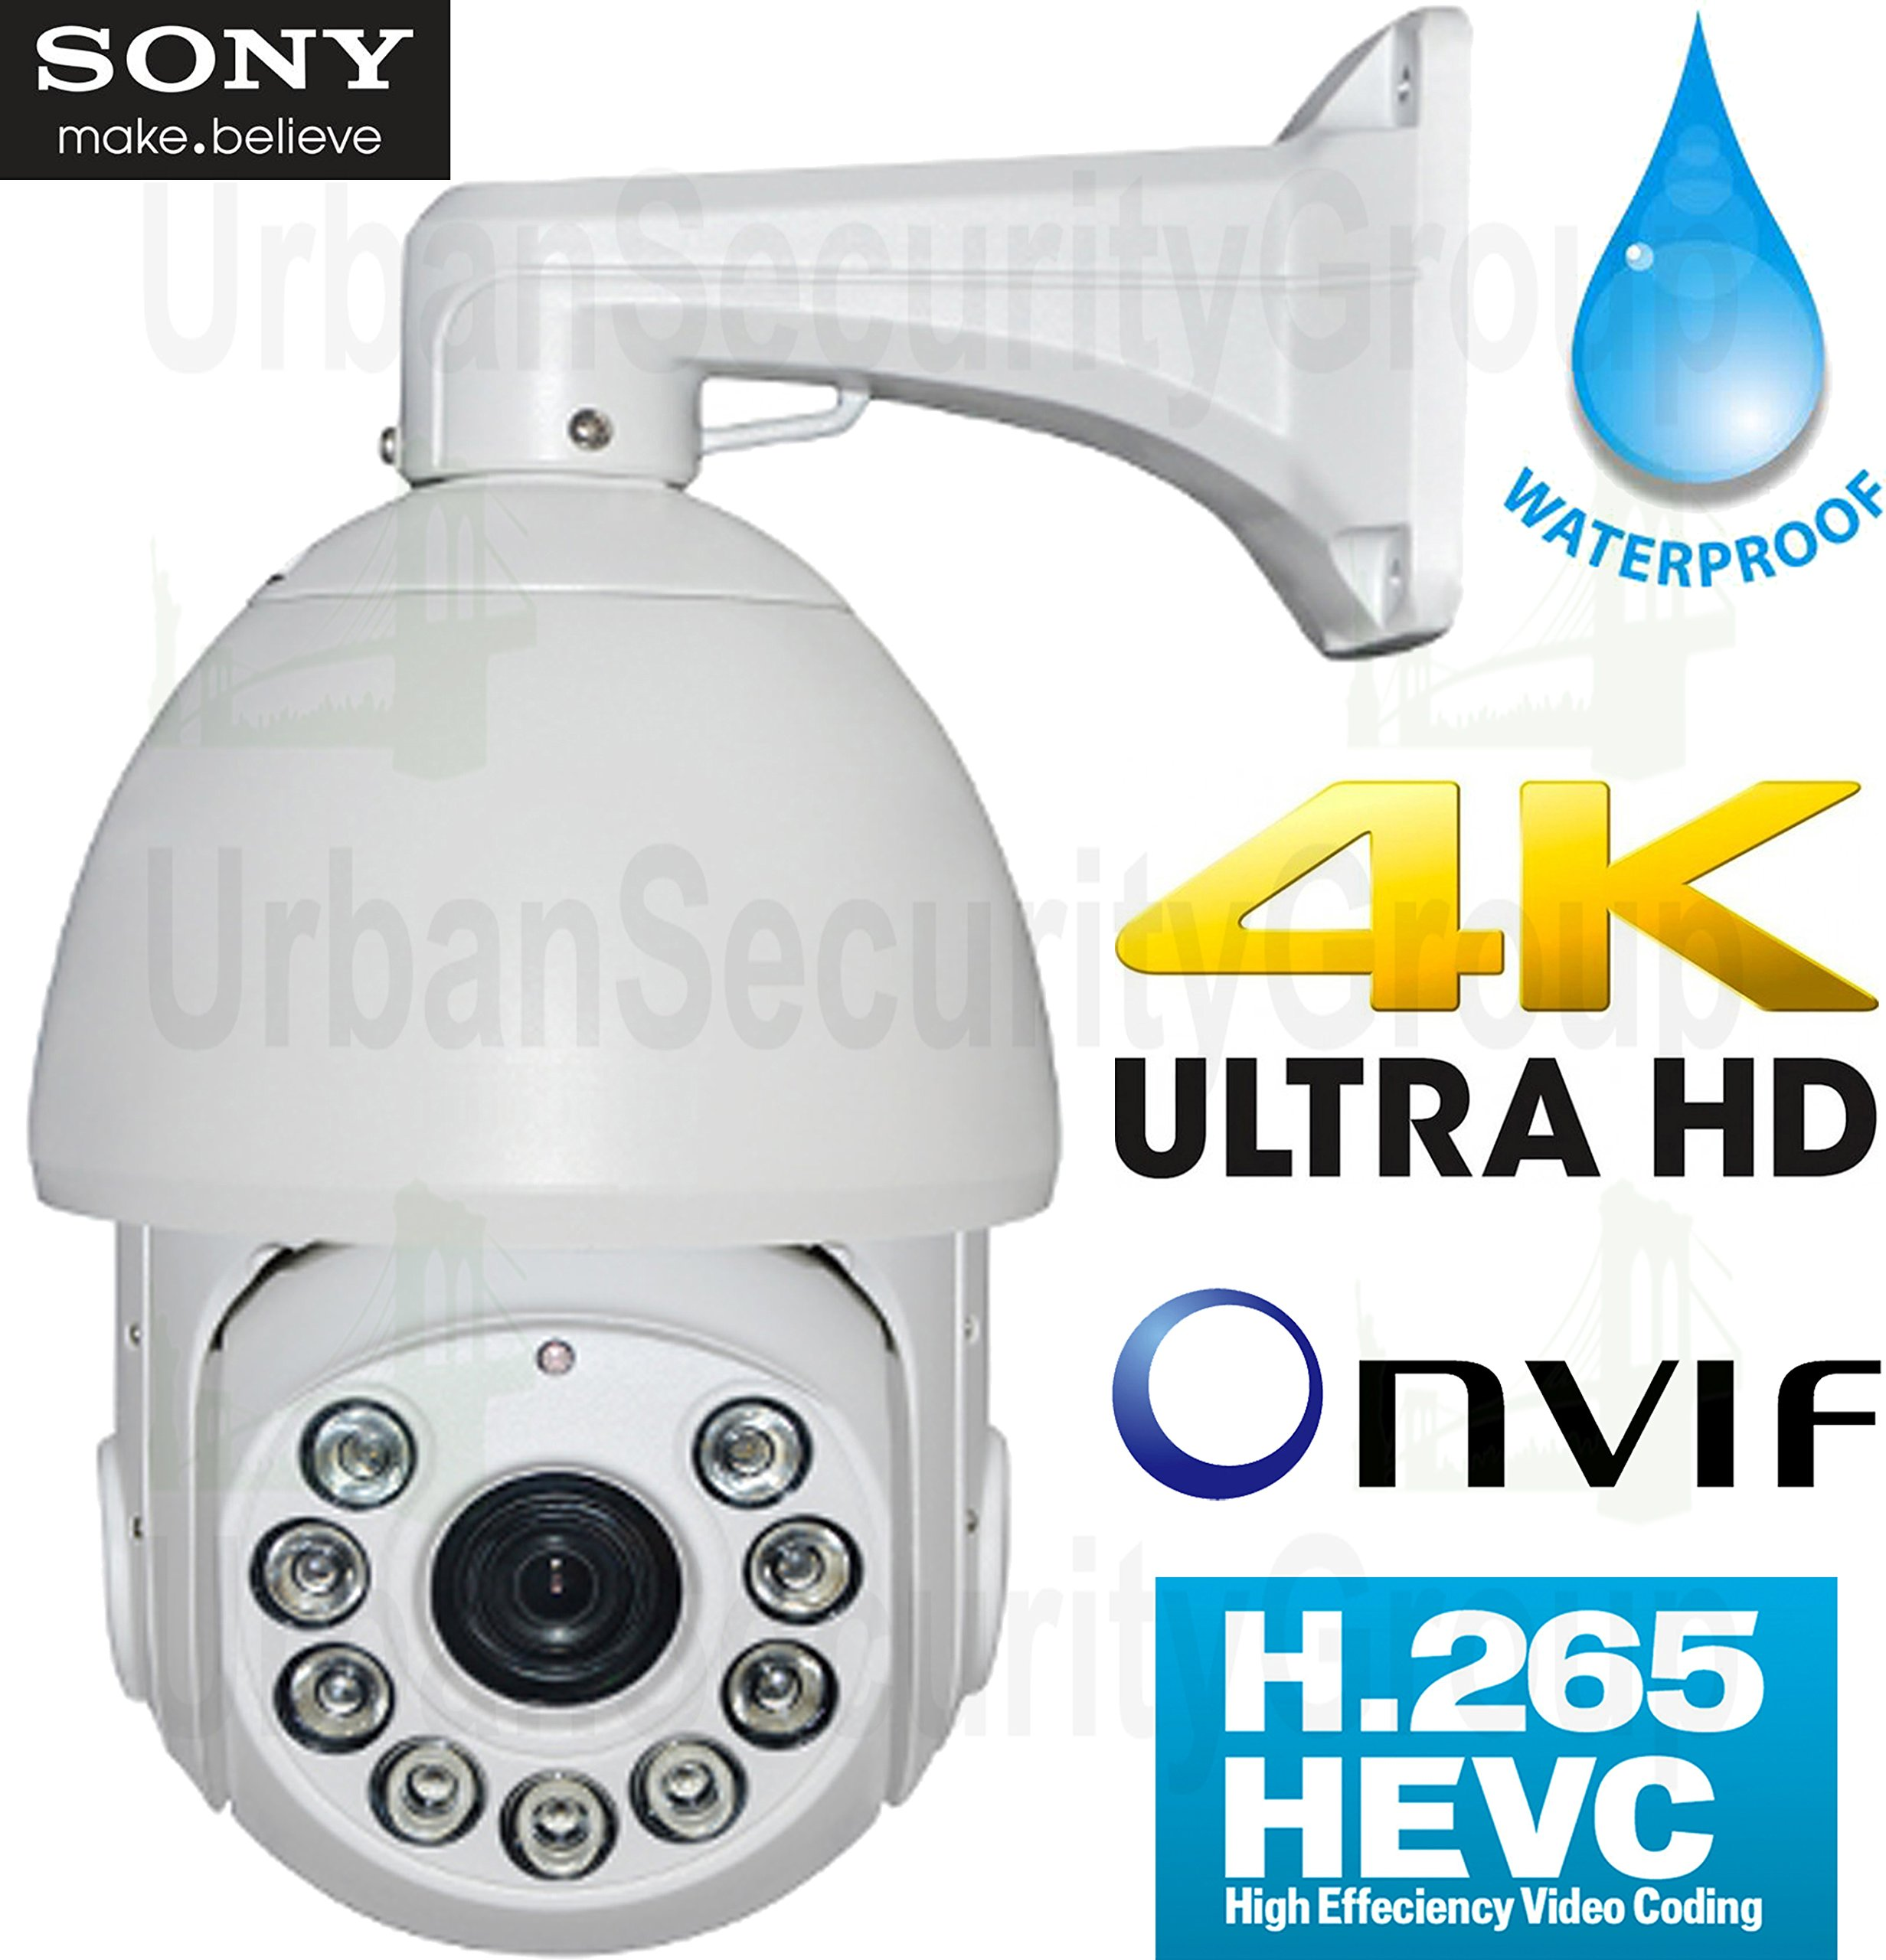 USG Business Grade H.265 5MP@30FPS IP PTZ Speed Dome Security Camera Sony DSP, 36x 4.5-162mm Remote Zoom + Auto-Focus Lens, 9x IR LEDs, ONVIF 2.4, IP66 Weatherproof Apple Android Phone Viewing